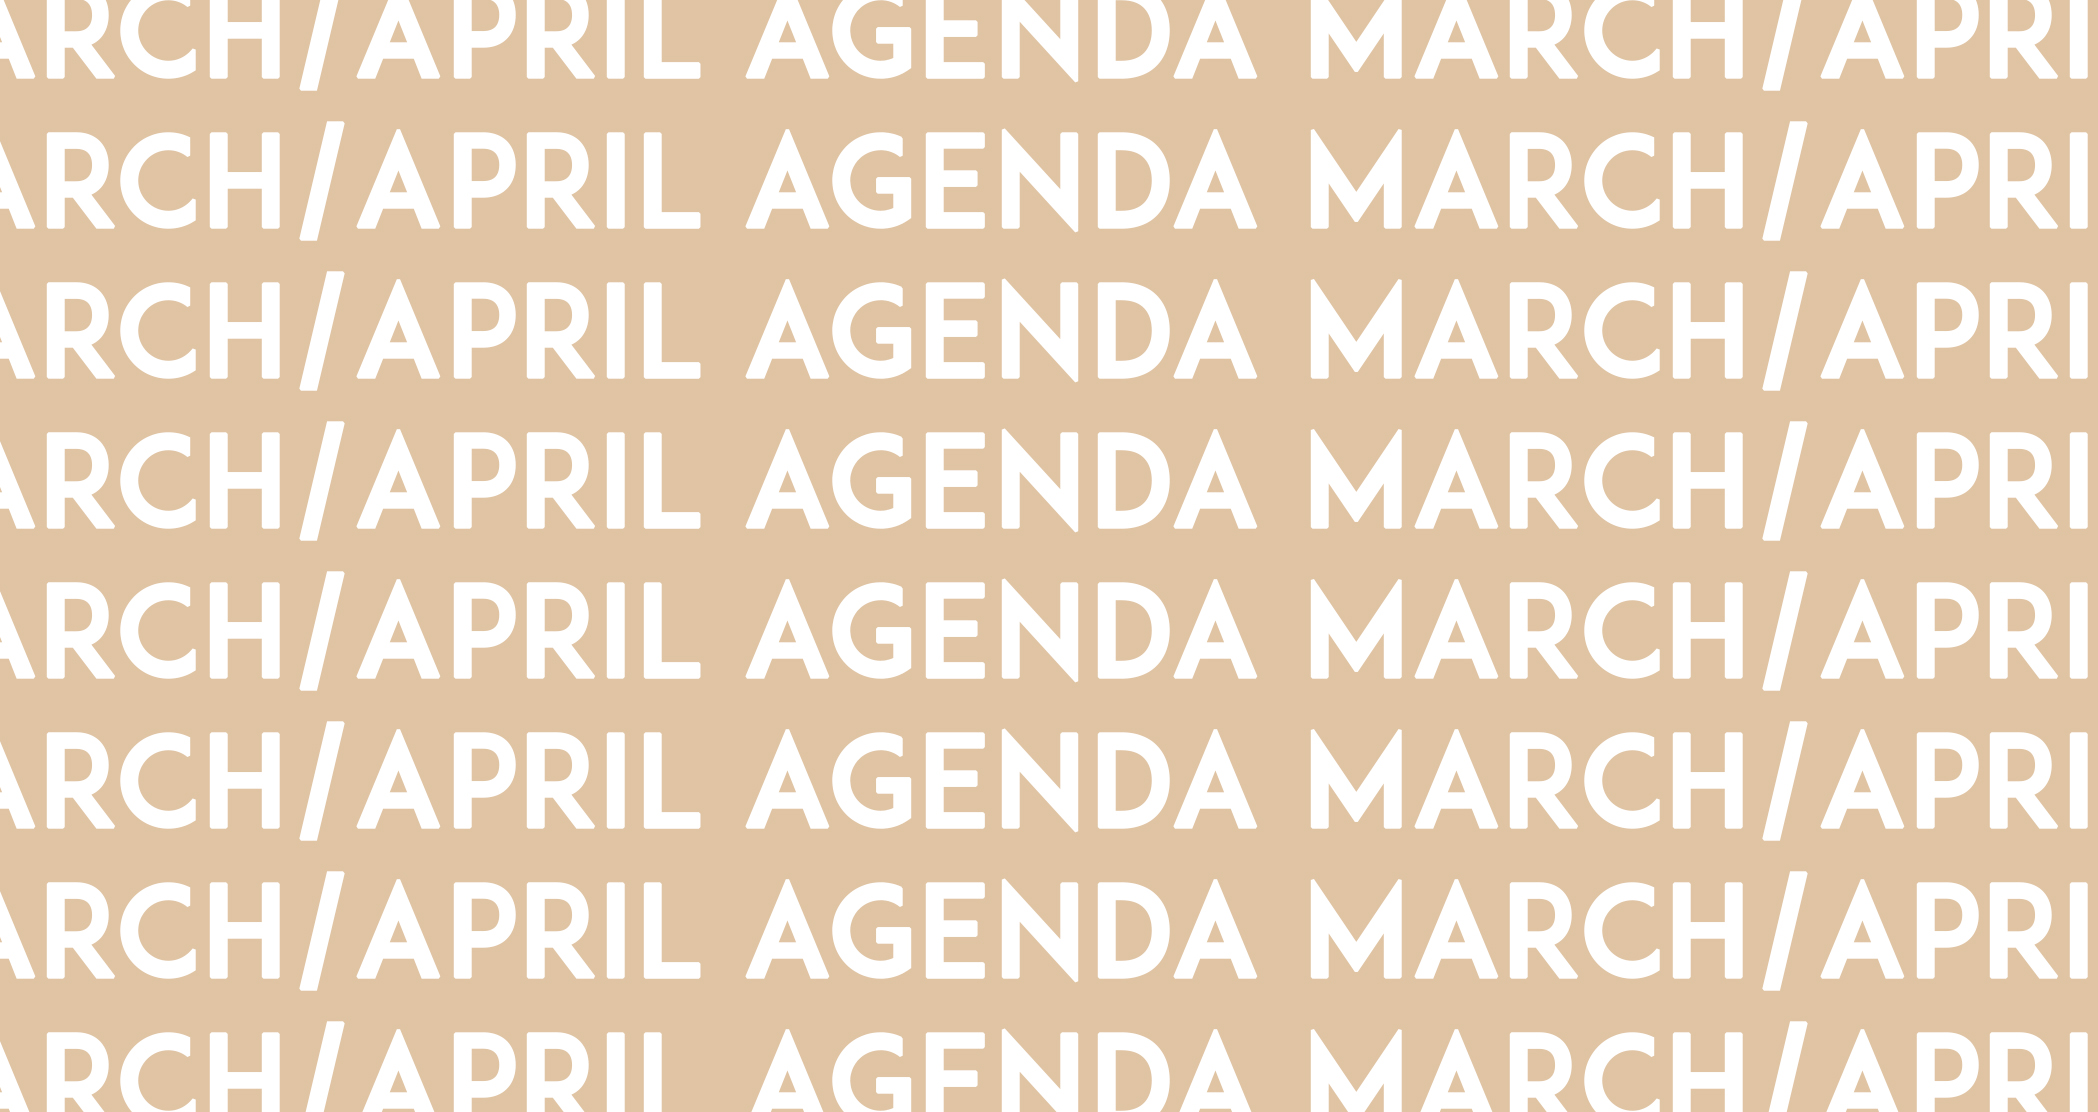 DOOR AGENDA/March-April